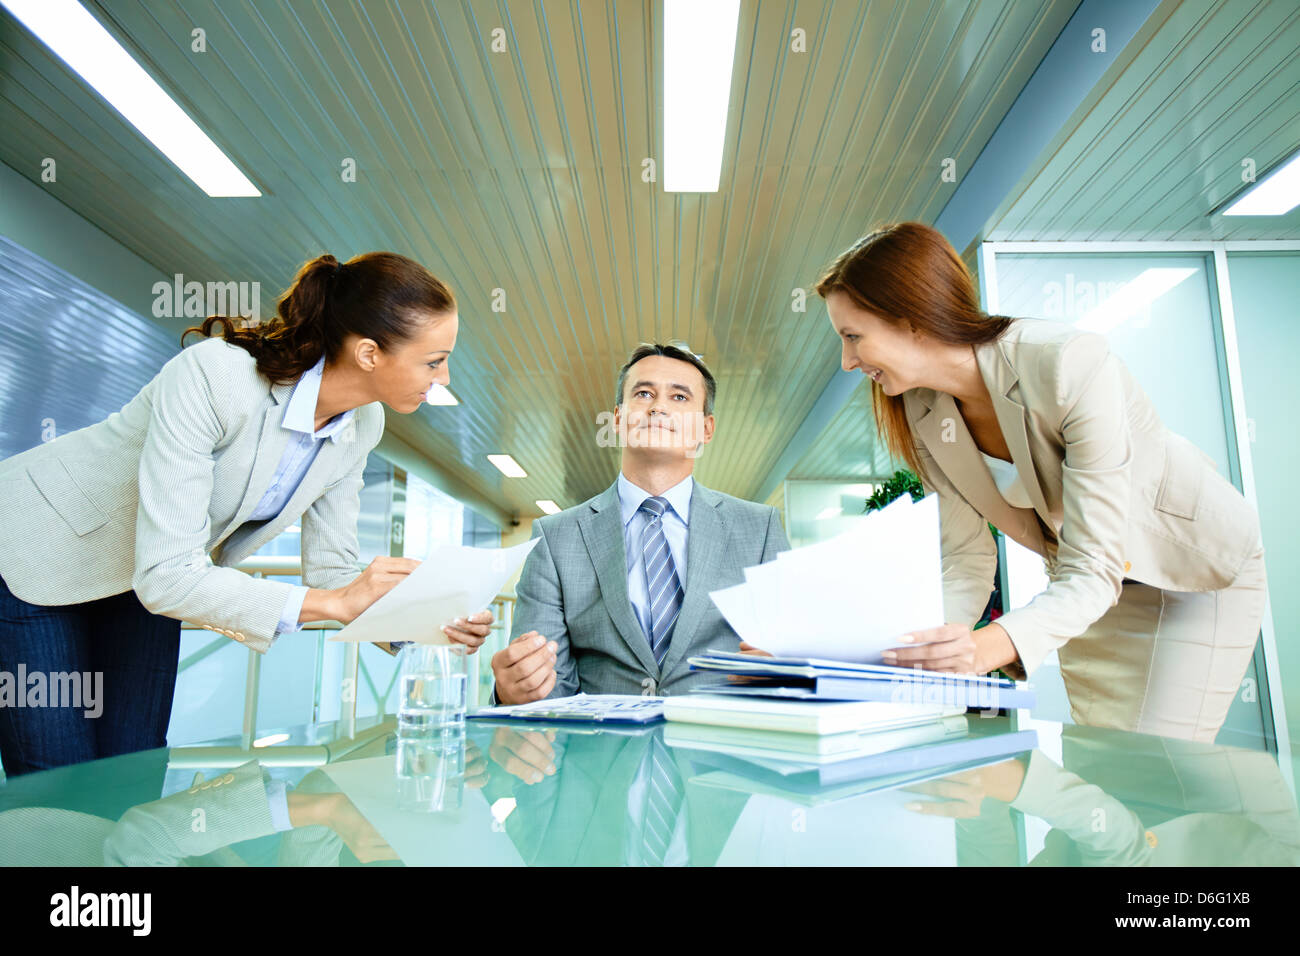 Inspirated boss sitting at workplace surrounded by two secretaries - Stock Image